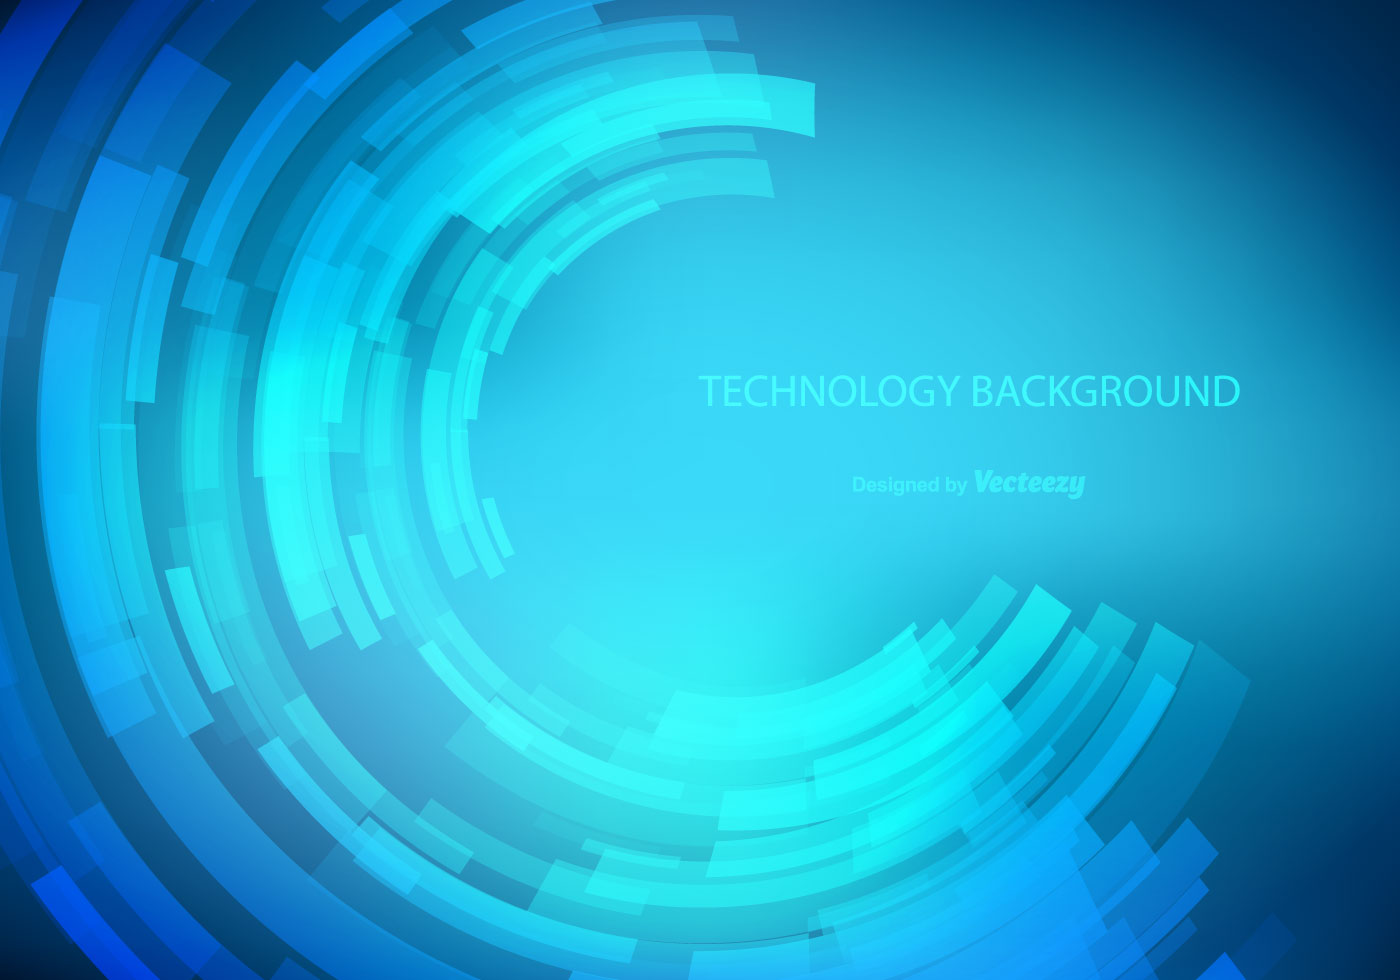 Technology Vector Background - Download Free Vector Art ...